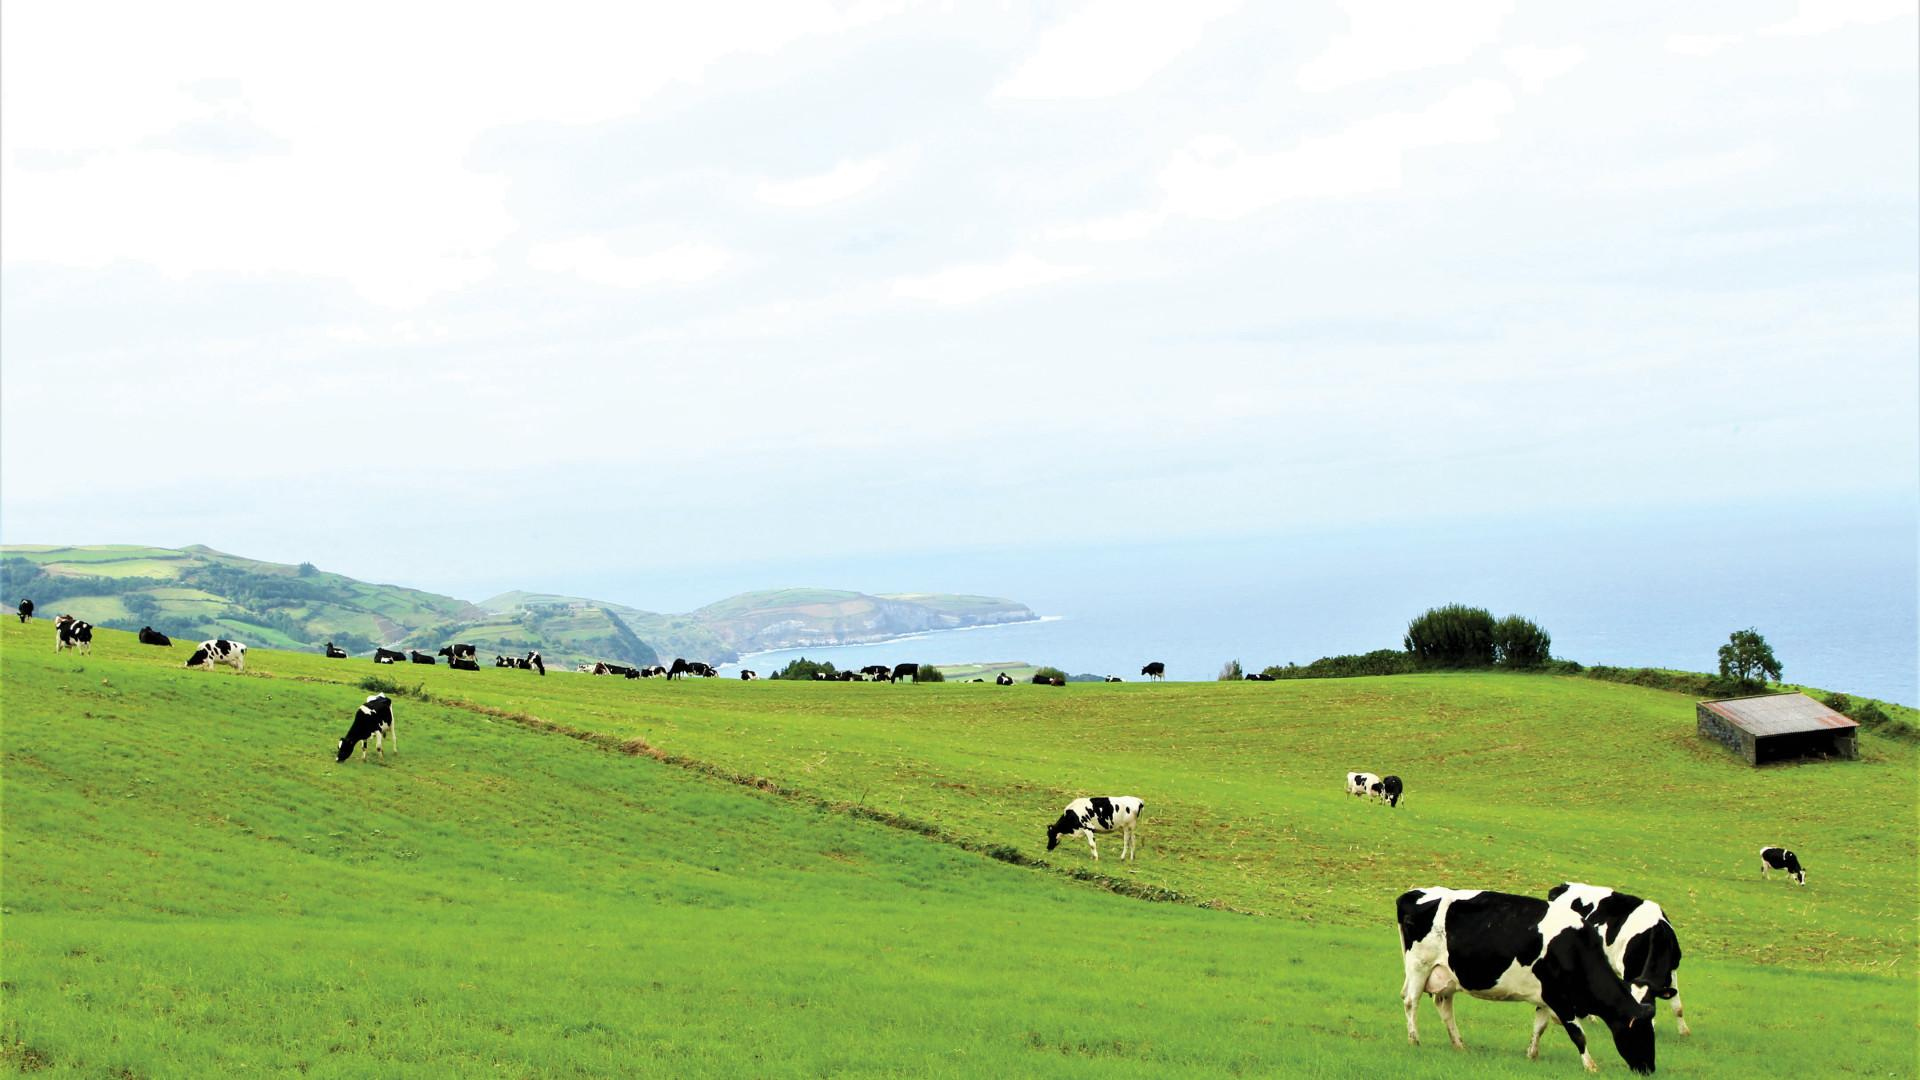 Azorean cheese from Portugal's Azores islands | Cows grazing